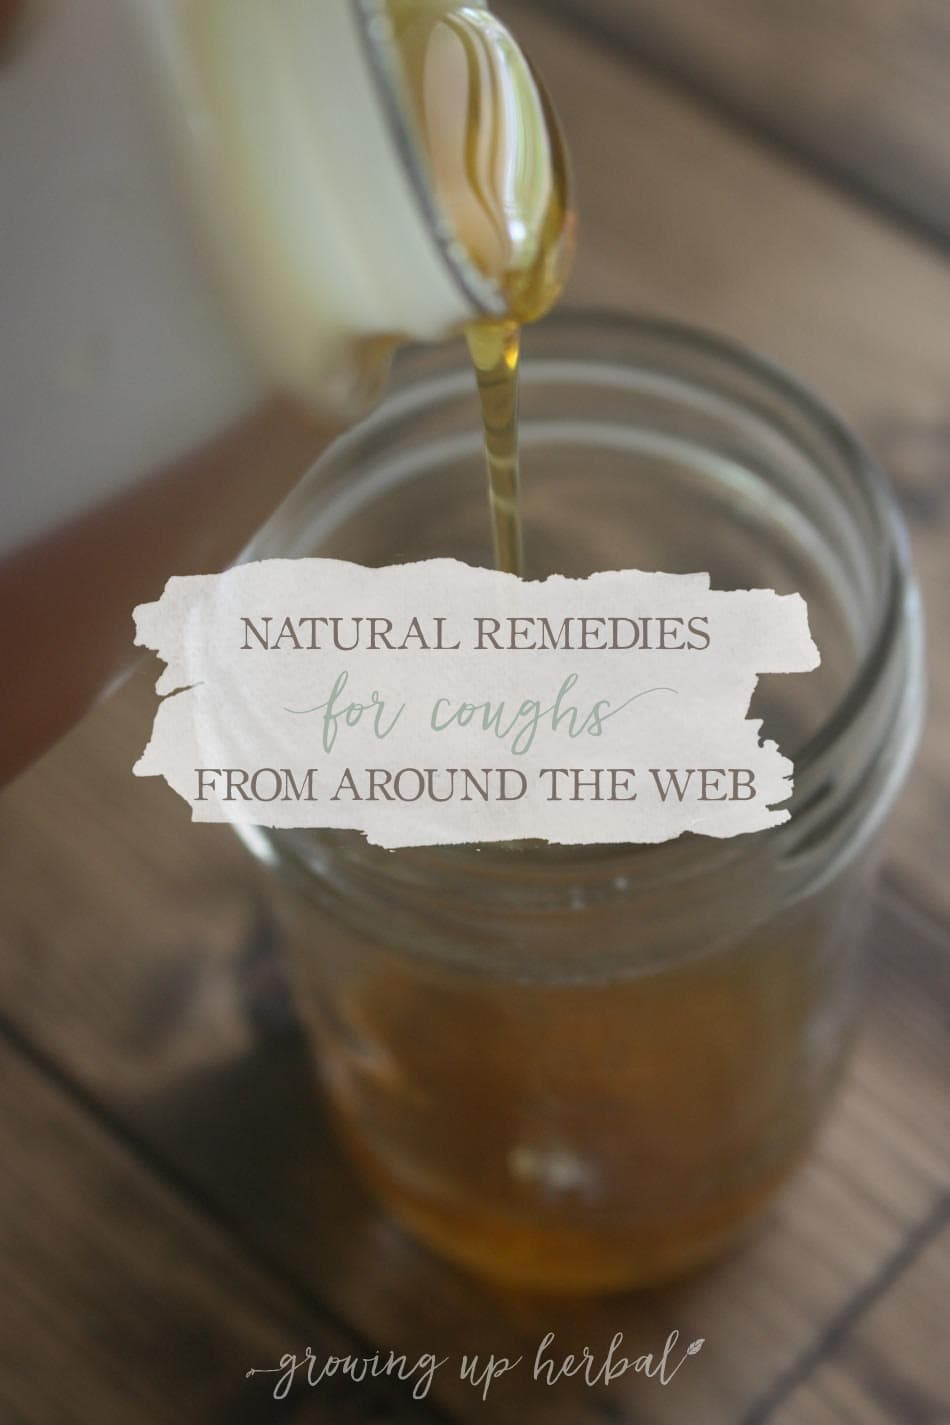 Natural Remedies For Coughs From Around The Web